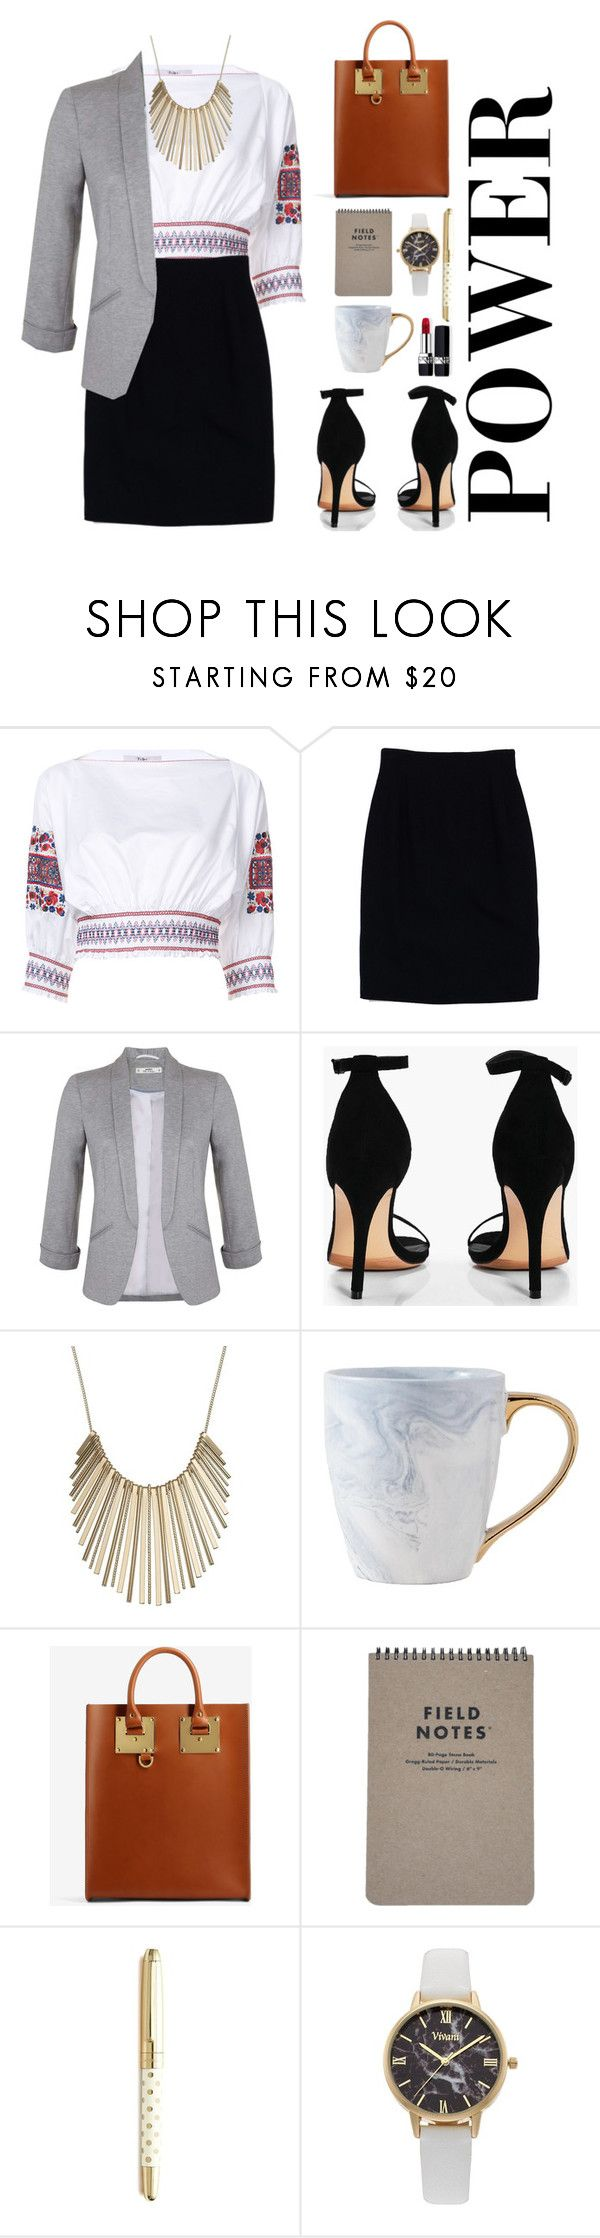 """""""the best thesis defense is a good thesis offense"""" by suchajocundcompany ❤ liked on Polyvore featuring TIBI, Christian Dior, Miss Selfridge, Boohoo, Jennifer Lopez, Sophie Hulme, Kate Spade, Vivani and MyPowerLook"""